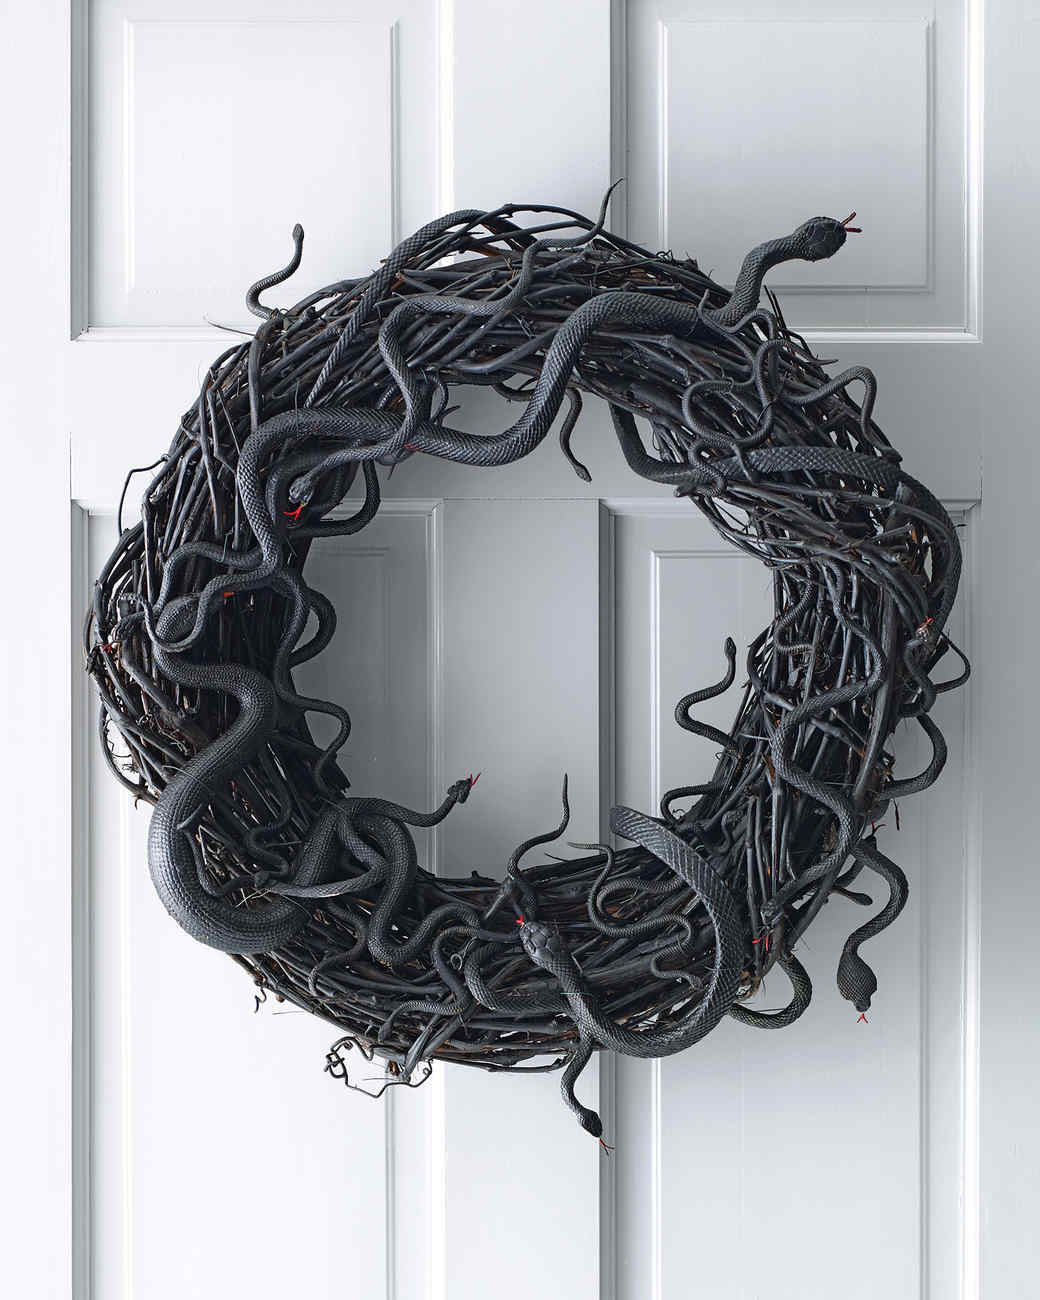 Black Snakes Halloween Wreath DIY